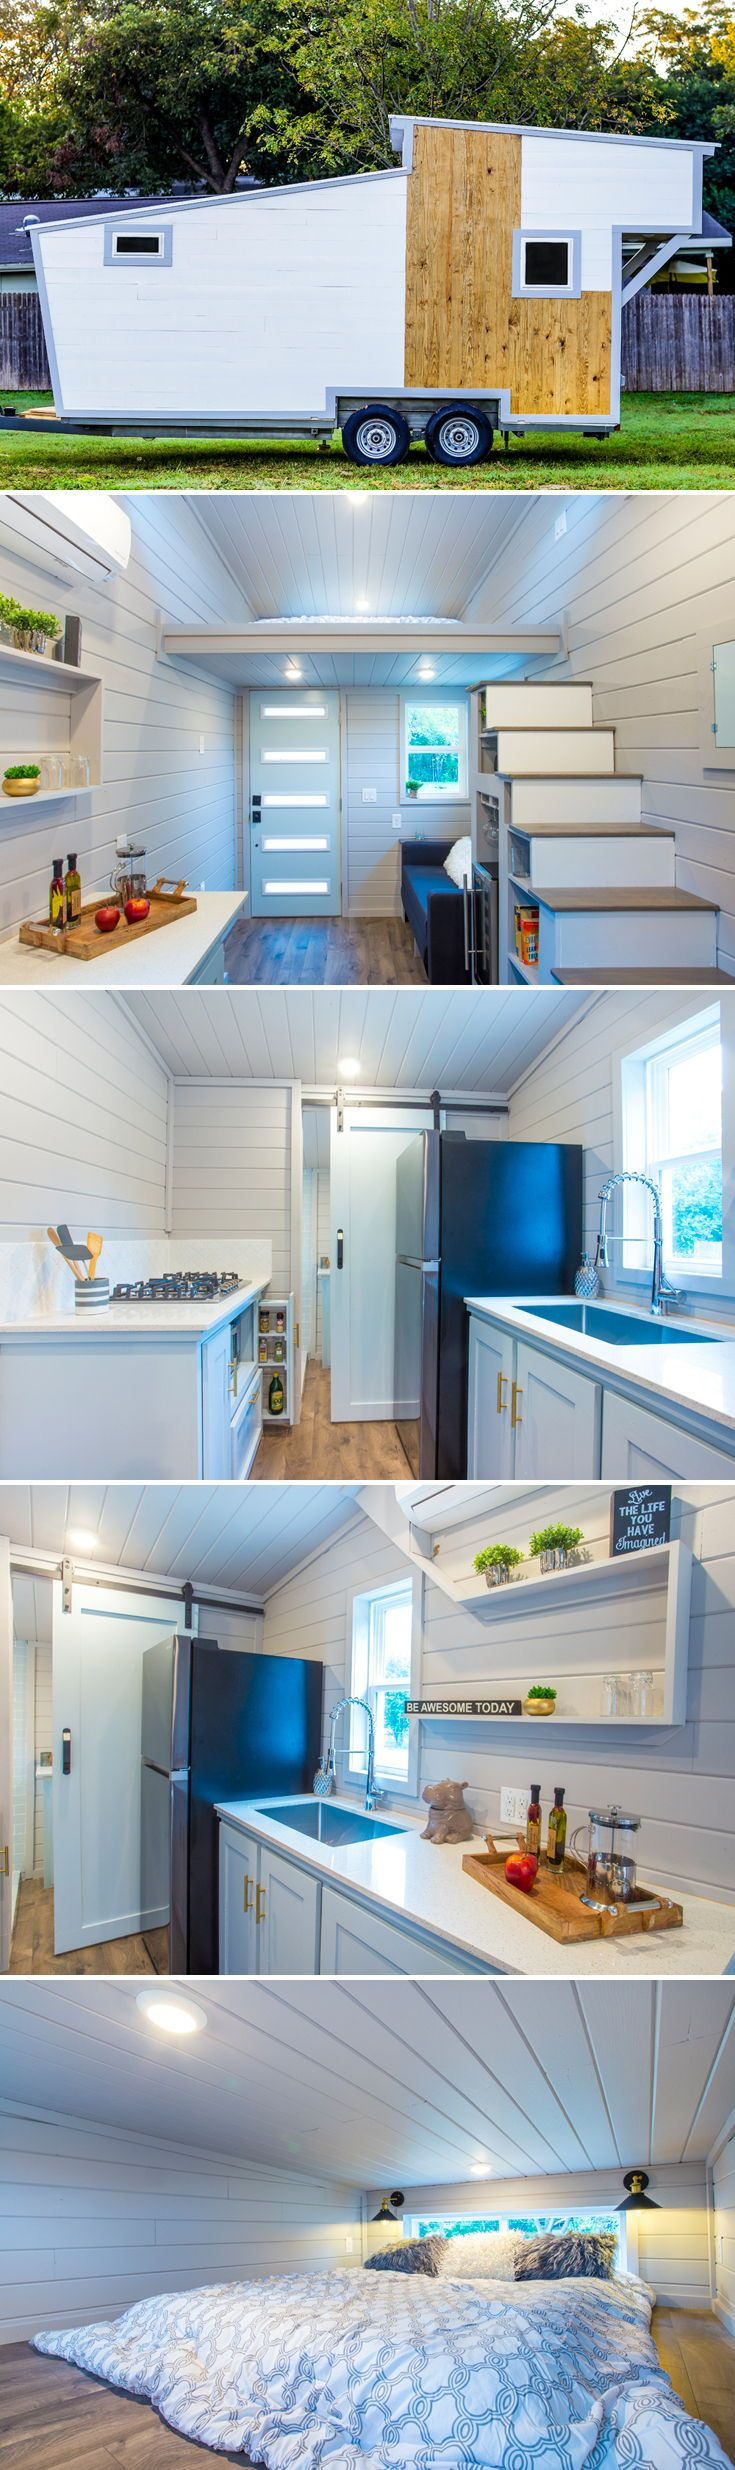 266 best Tiny Homes images on Pinterest   Kitchen small, Small ...